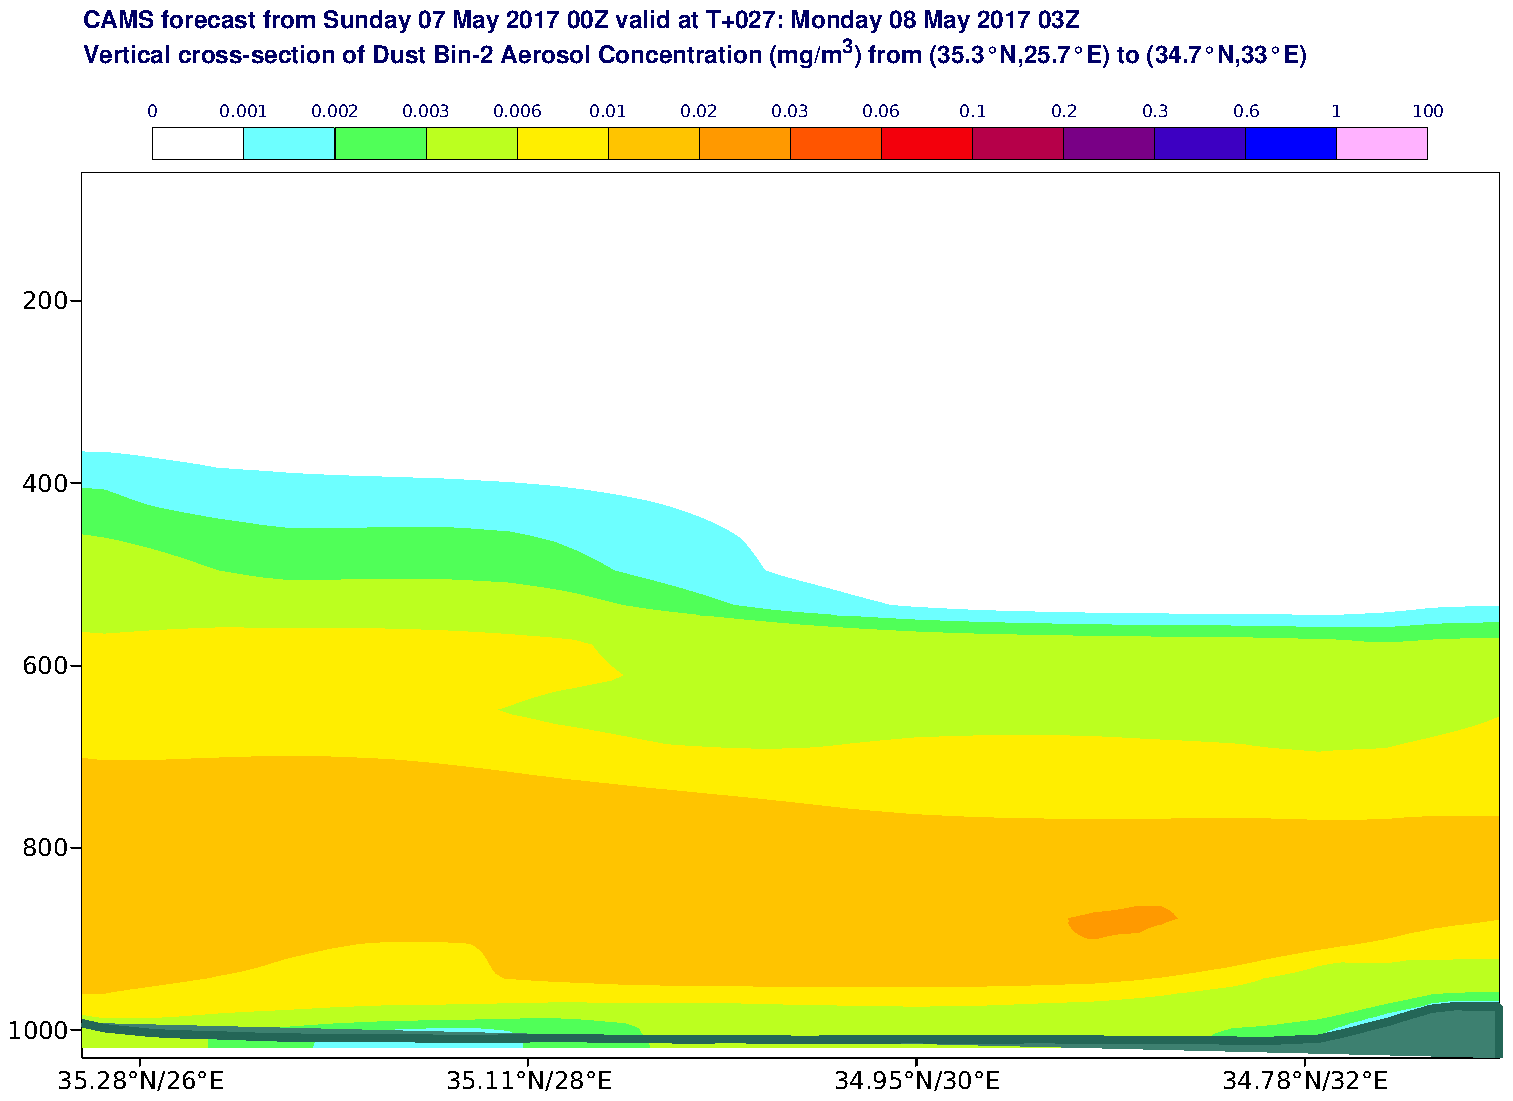 Vertical cross-section of Dust Bin-2 Aerosol Concentration (mg/m3) valid at T27 - 2017-05-08 03:00